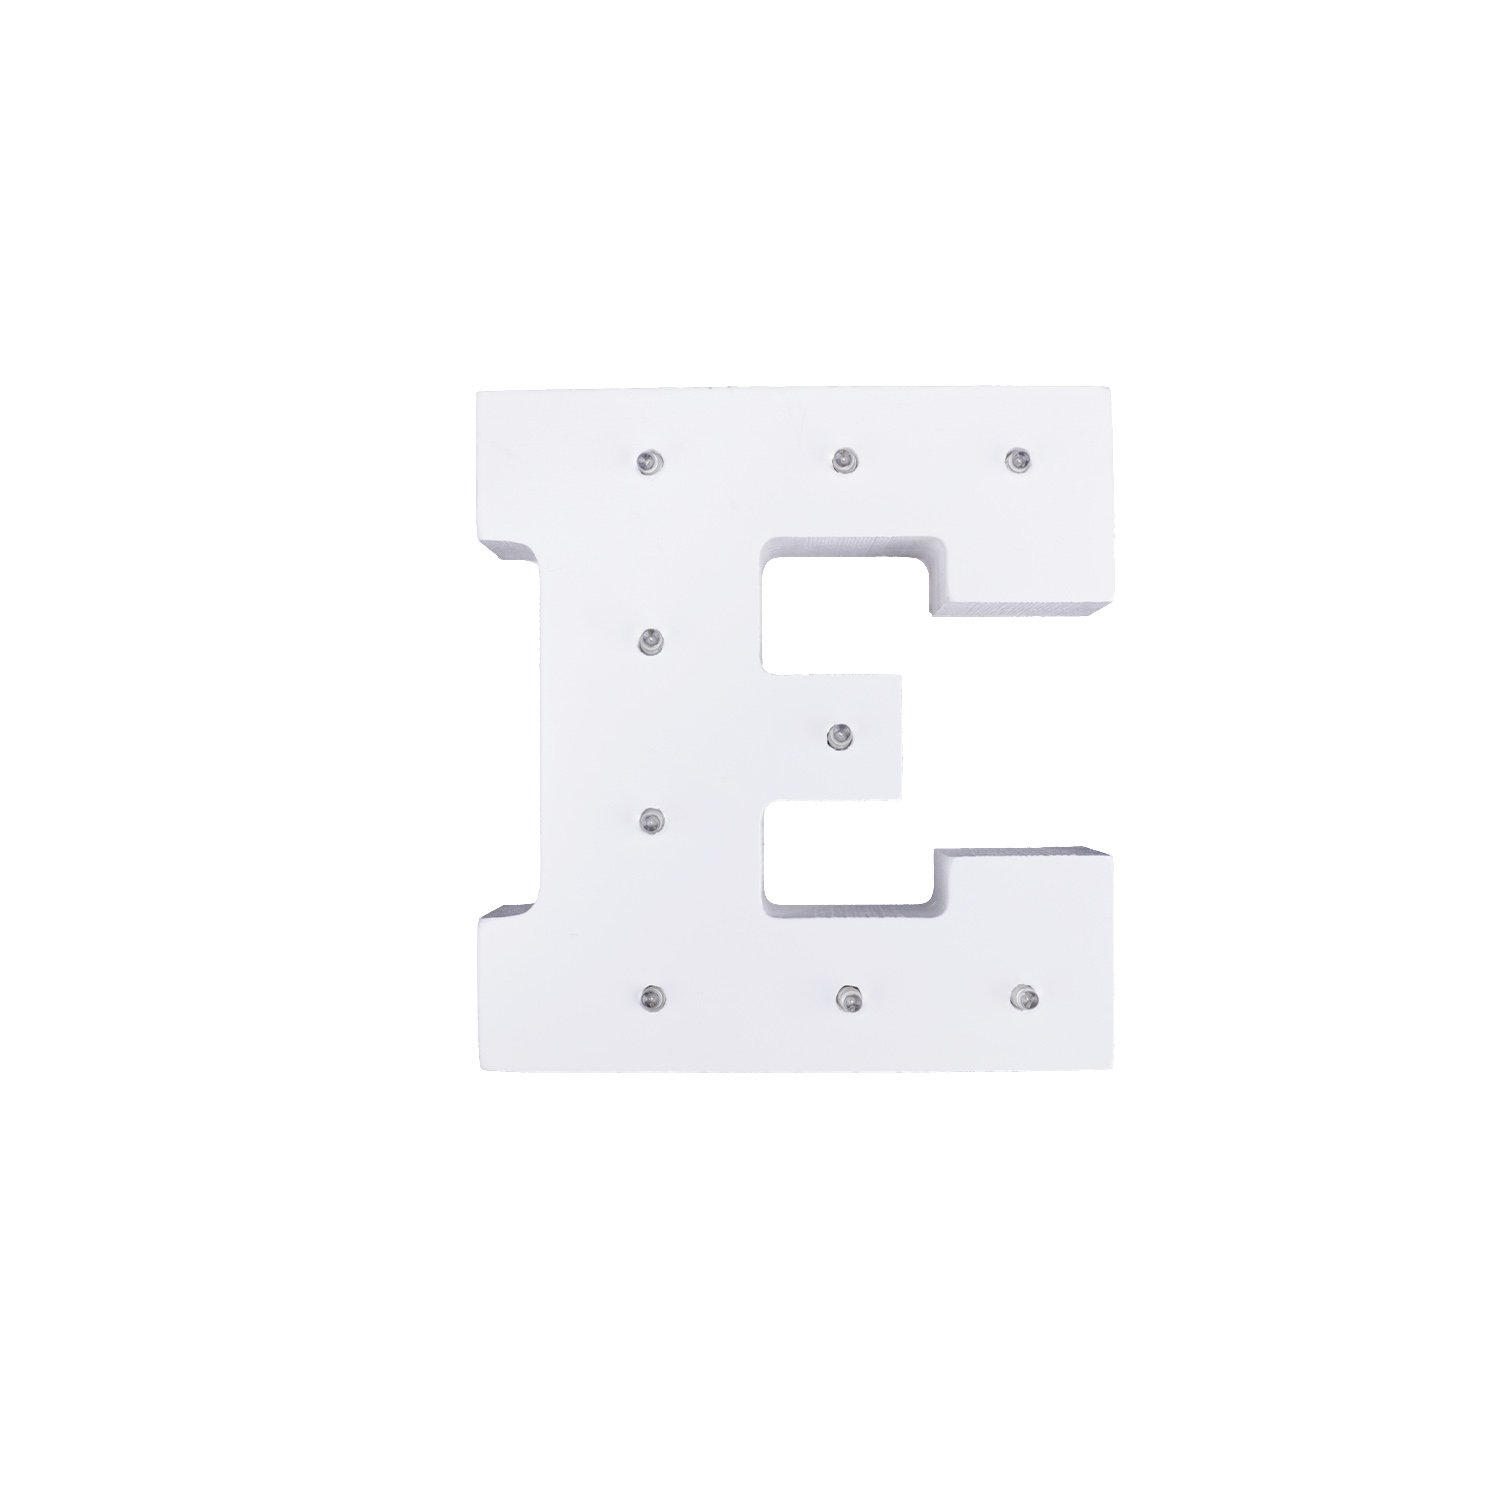 Dulcklane Decorative DIY LED Letter Lights Sign,Light Up Wooden Alphabet Letter Battery Operated Party Wedding Marquee Décor Letter H Specialty & Decorative Lighting Home & Kitchen